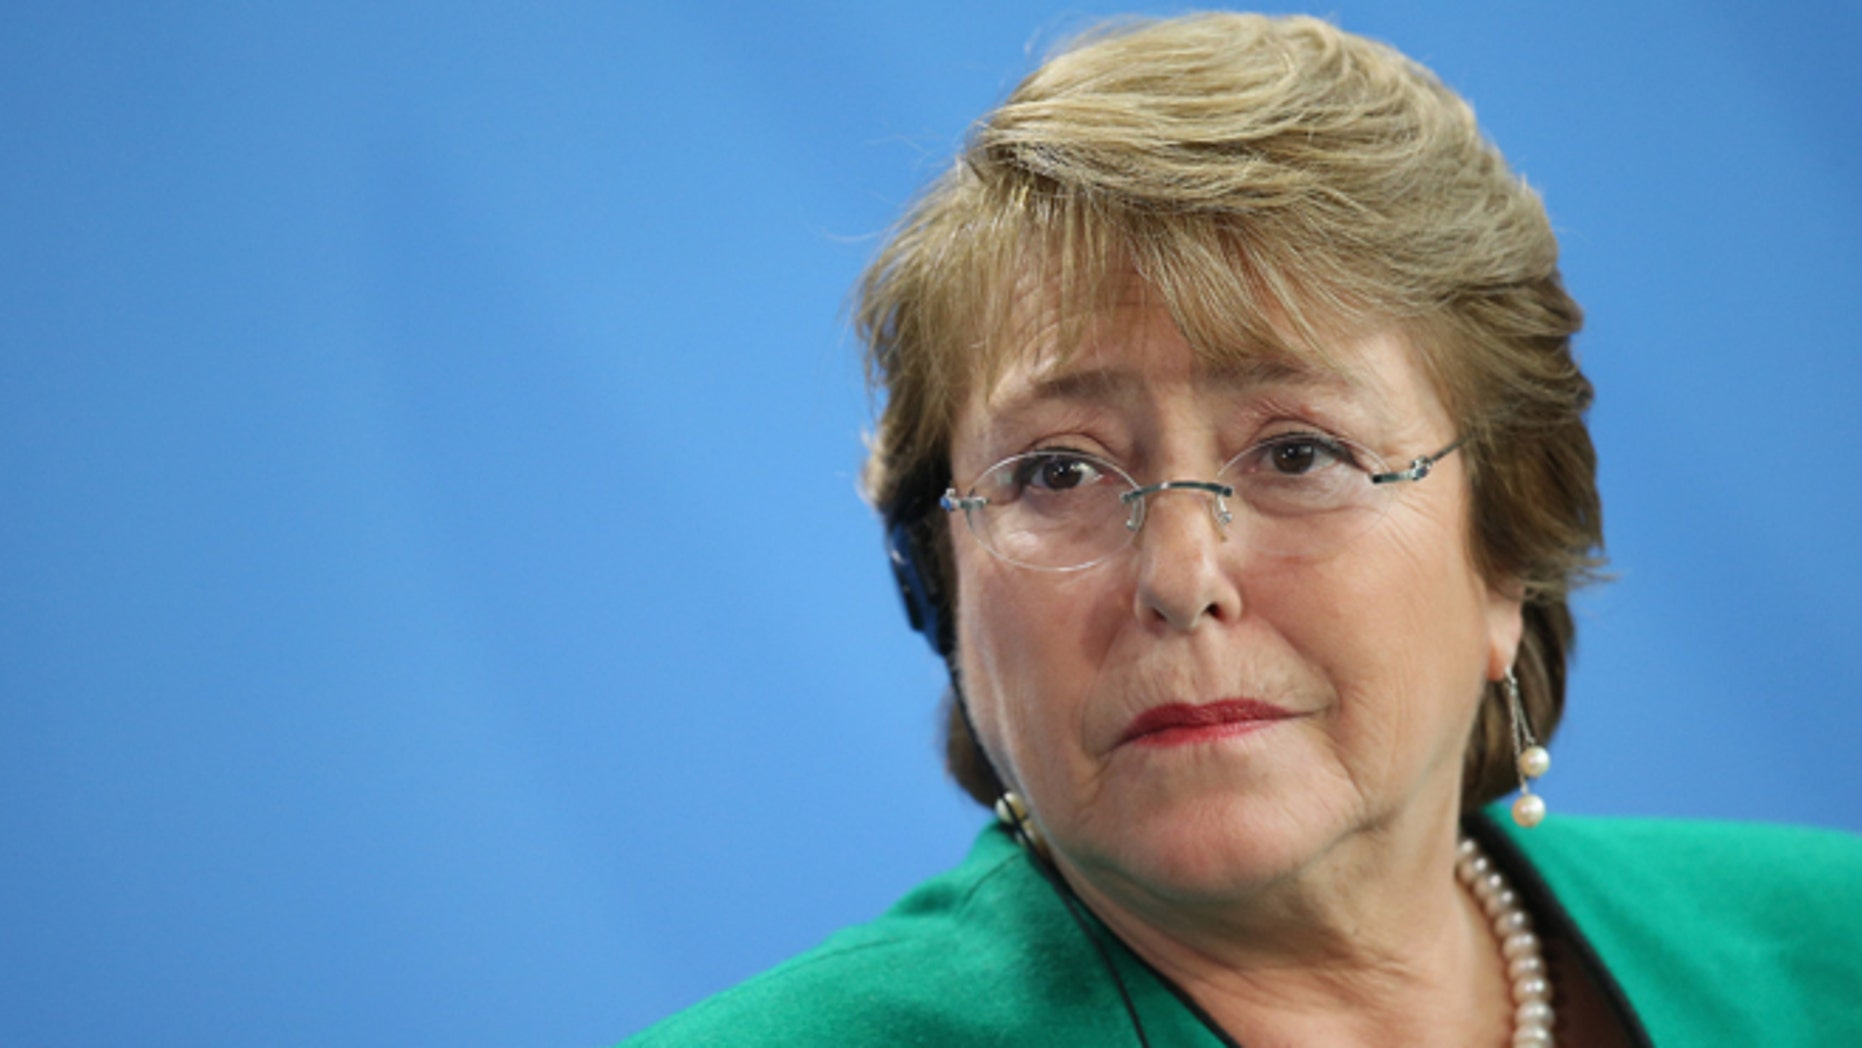 BERLIN, GERMANY - OCTOBER 27:  Chilean President  Michelle Bachelet speaks to the media with German Chancellor Angela Merkel (not pictured) following talks at the Chancellery on October 27, 2014 in Berlin, Germany. Bachelet is on a two-day official visit to Germany, which includes a visit to Dresden, where Bachelet studied medicine as a student.  (Photo by Sean Gallup/Getty Images)